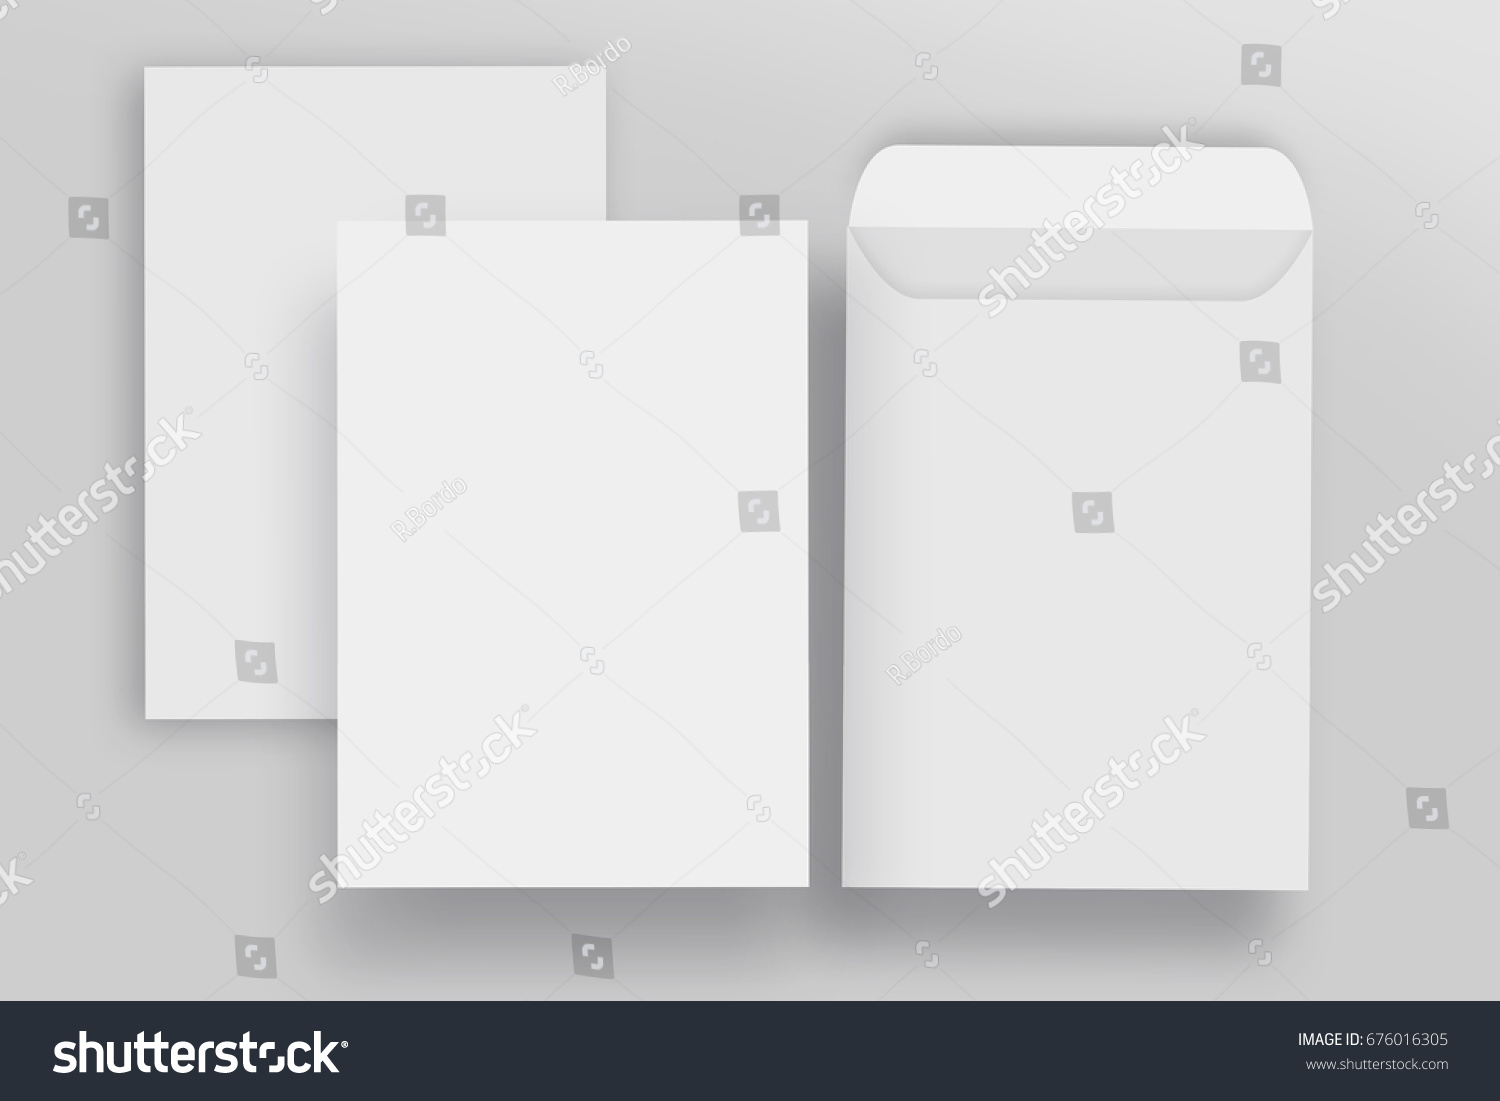 Blank envelope C4 mock up and Blank letterhead presentation template, isolated background